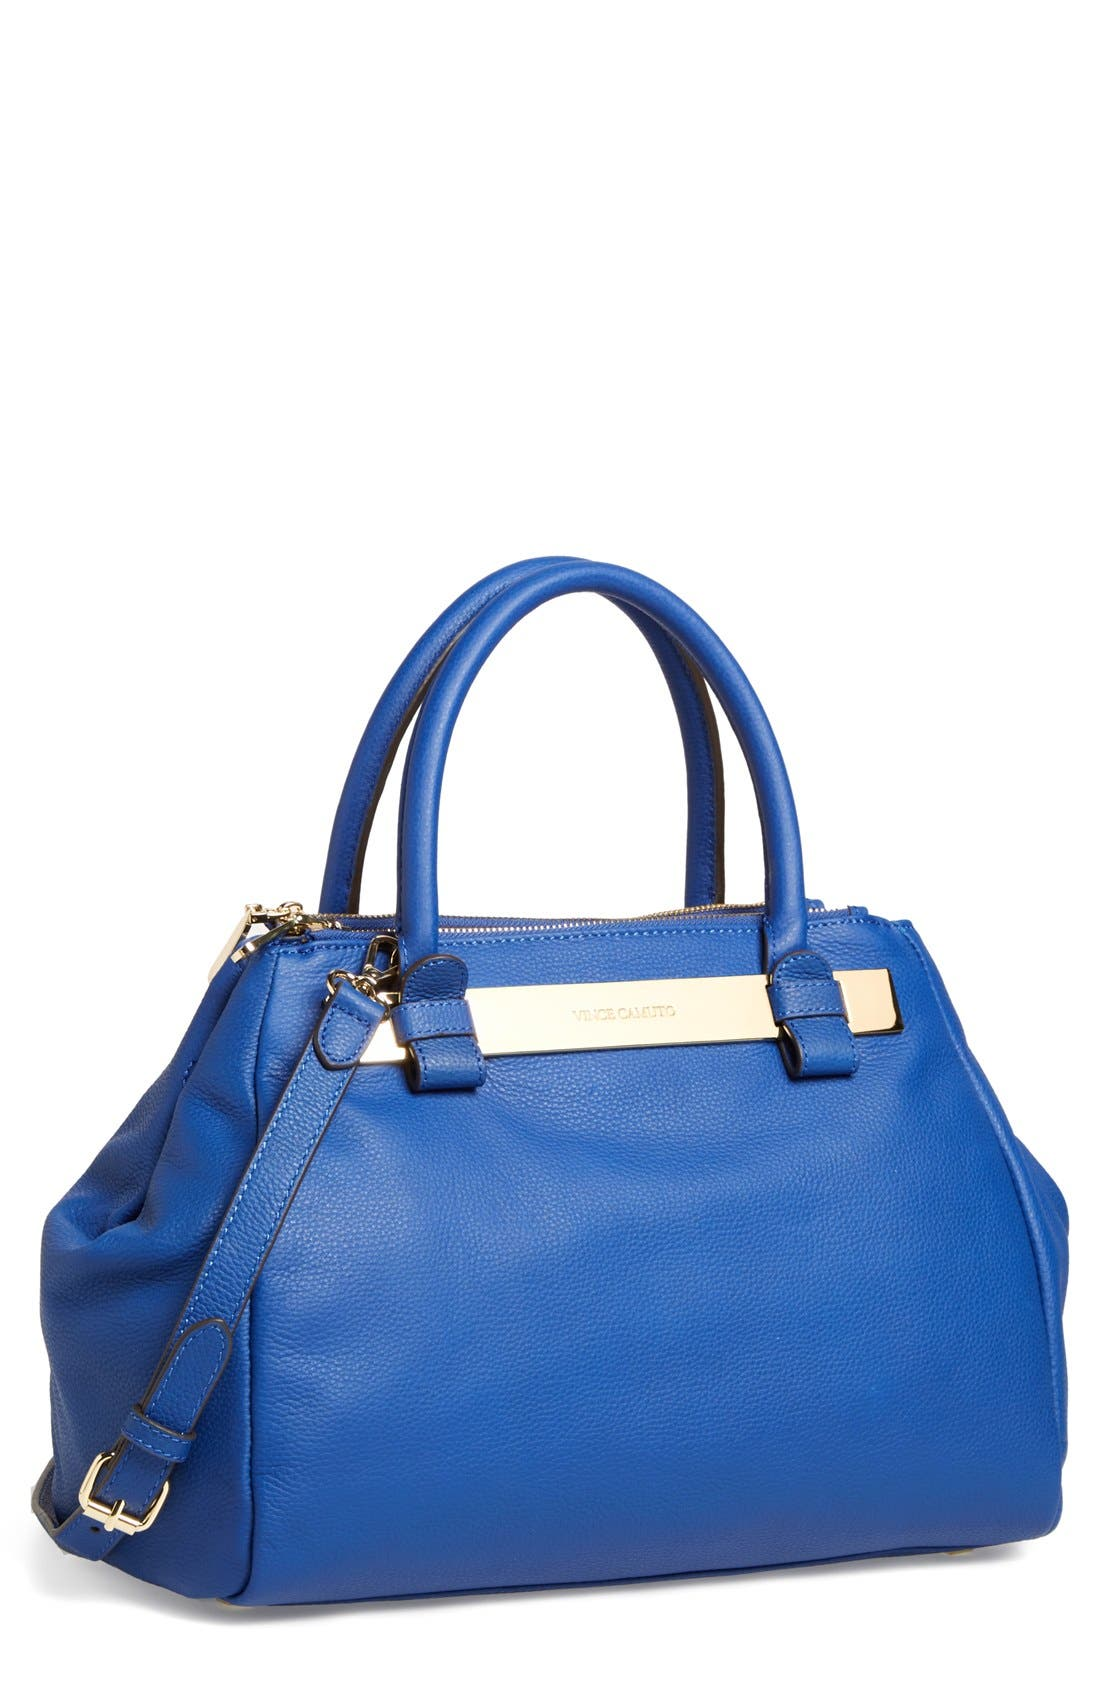 Main Image - Vince Camuto 'Jace' Leather Satchel